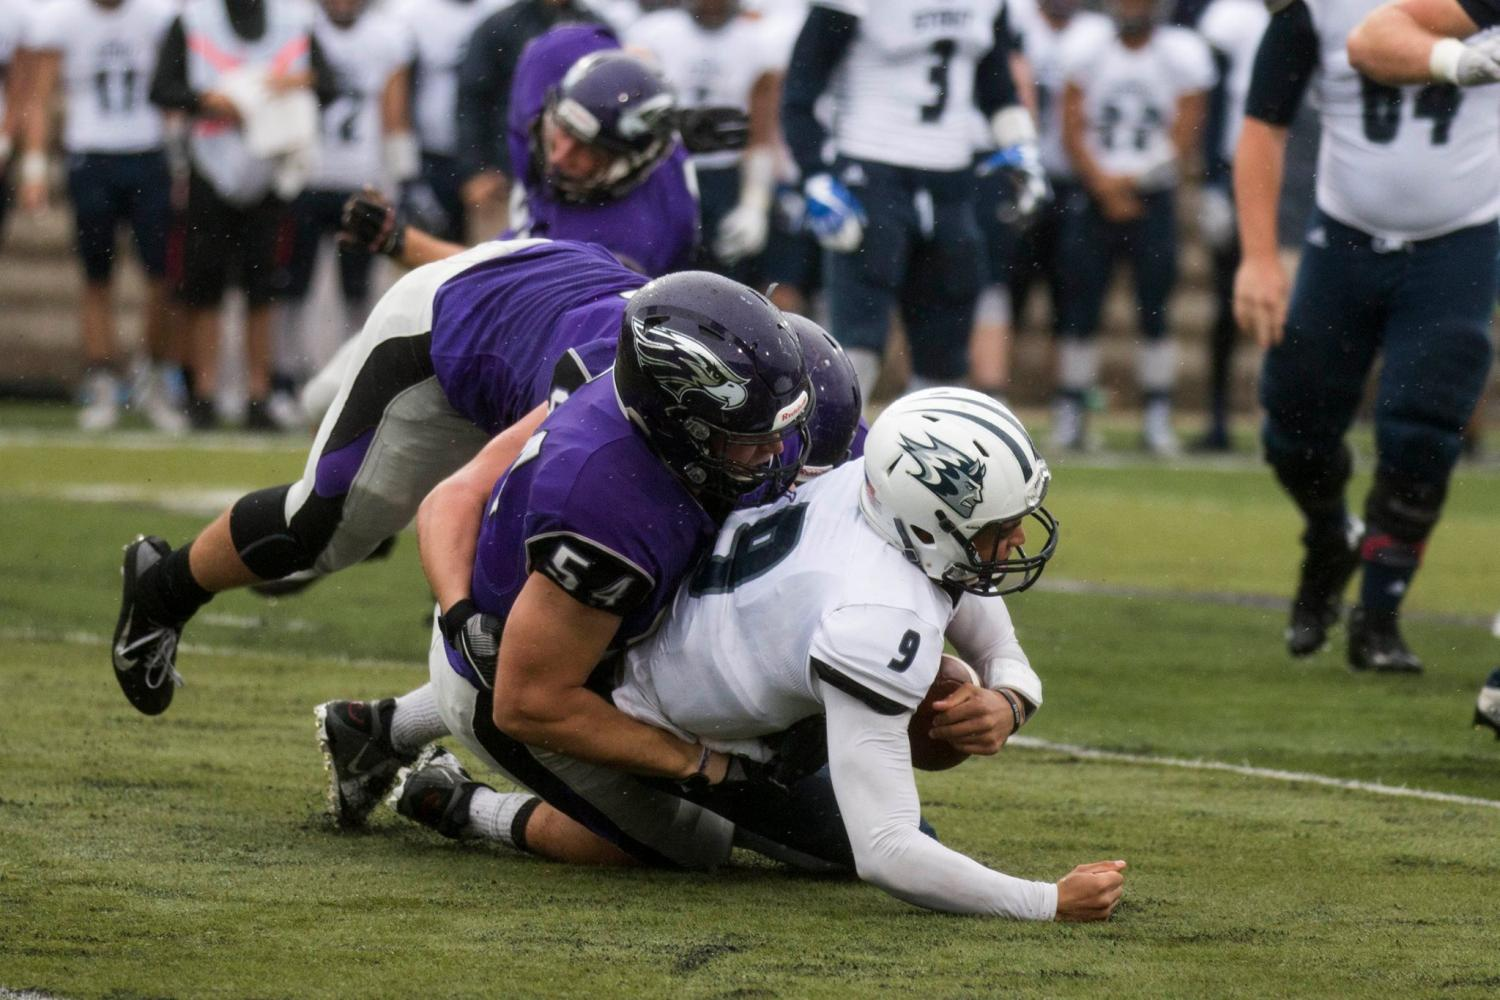 On a rainy afternoon the UW-Whitewater football team defeated the 23rd ranked UW-Stout Blue Devils 14-0 in the Warhawks home opener.